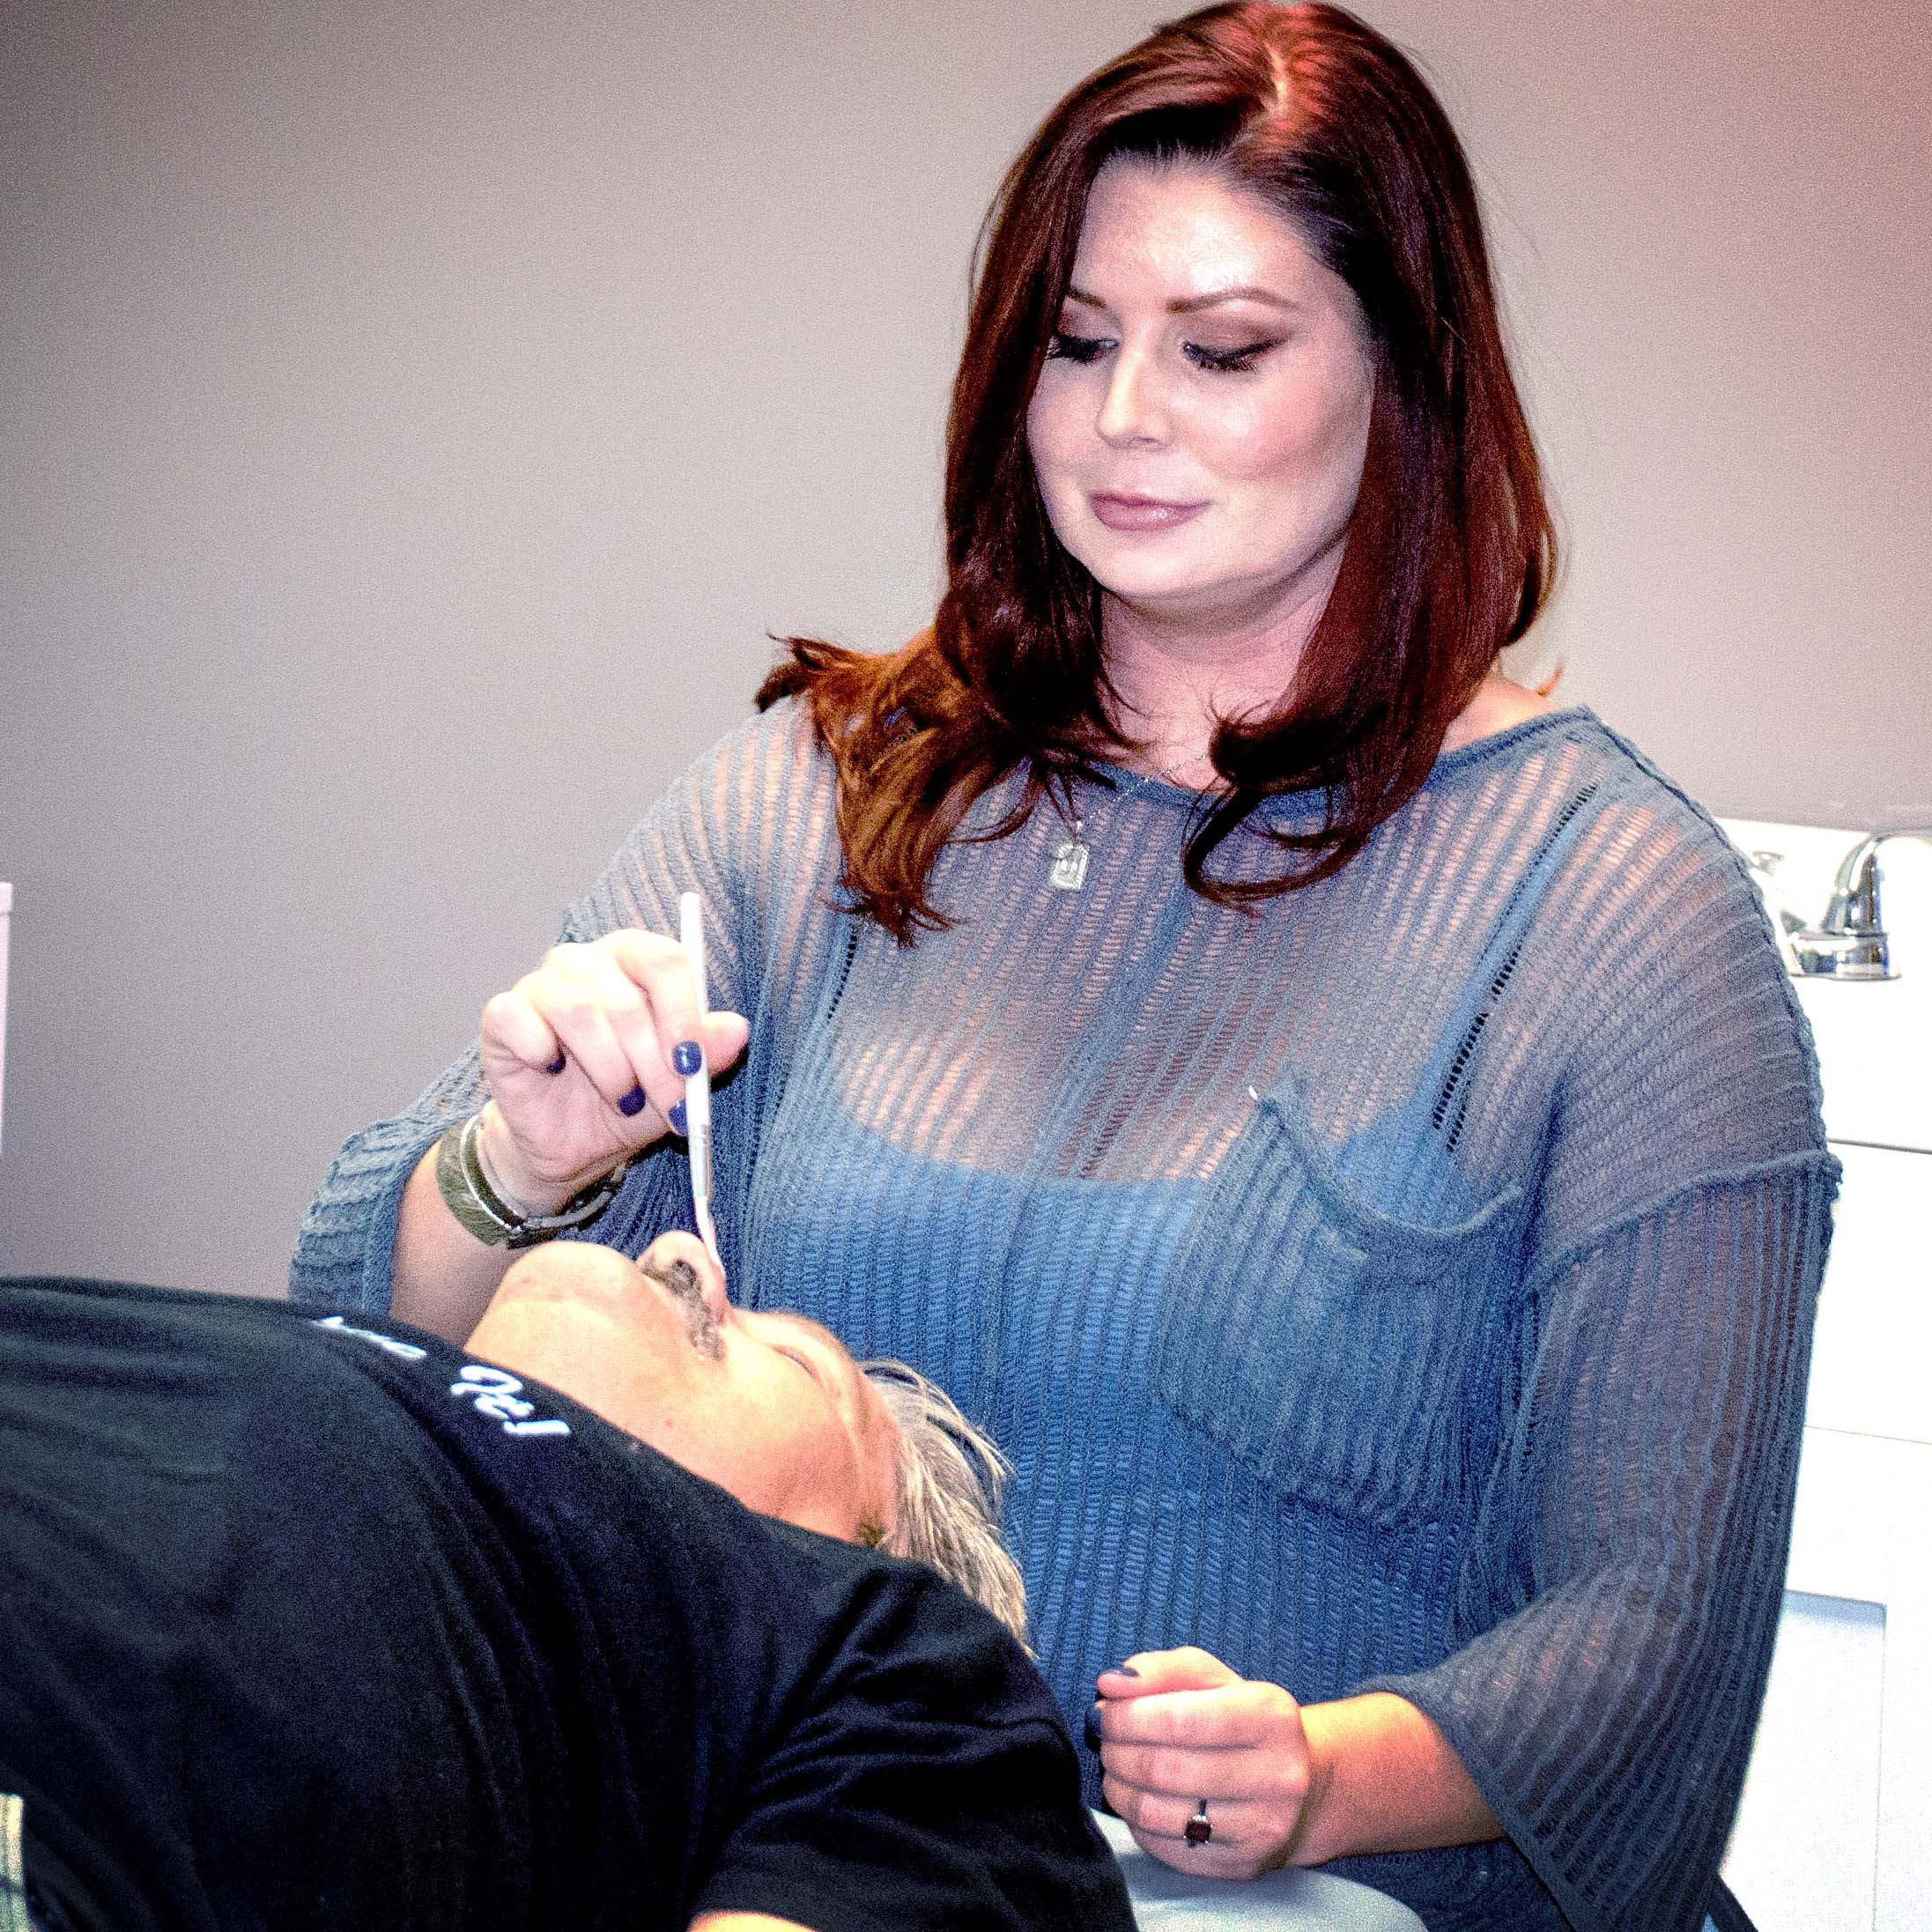 Samantha Unruh fields a serve for Hillsboro during a match against Sunrise Christian Academy on Saturday during the annual Trojans Invitational tournament. Hillsboro won the match 21-25, 25-23, and advanced out of pool play to face Andale in the semifinal round. Andale won 25-20, 25-13, with the Trojans finishing fourth. Augusta was the tournament winner.